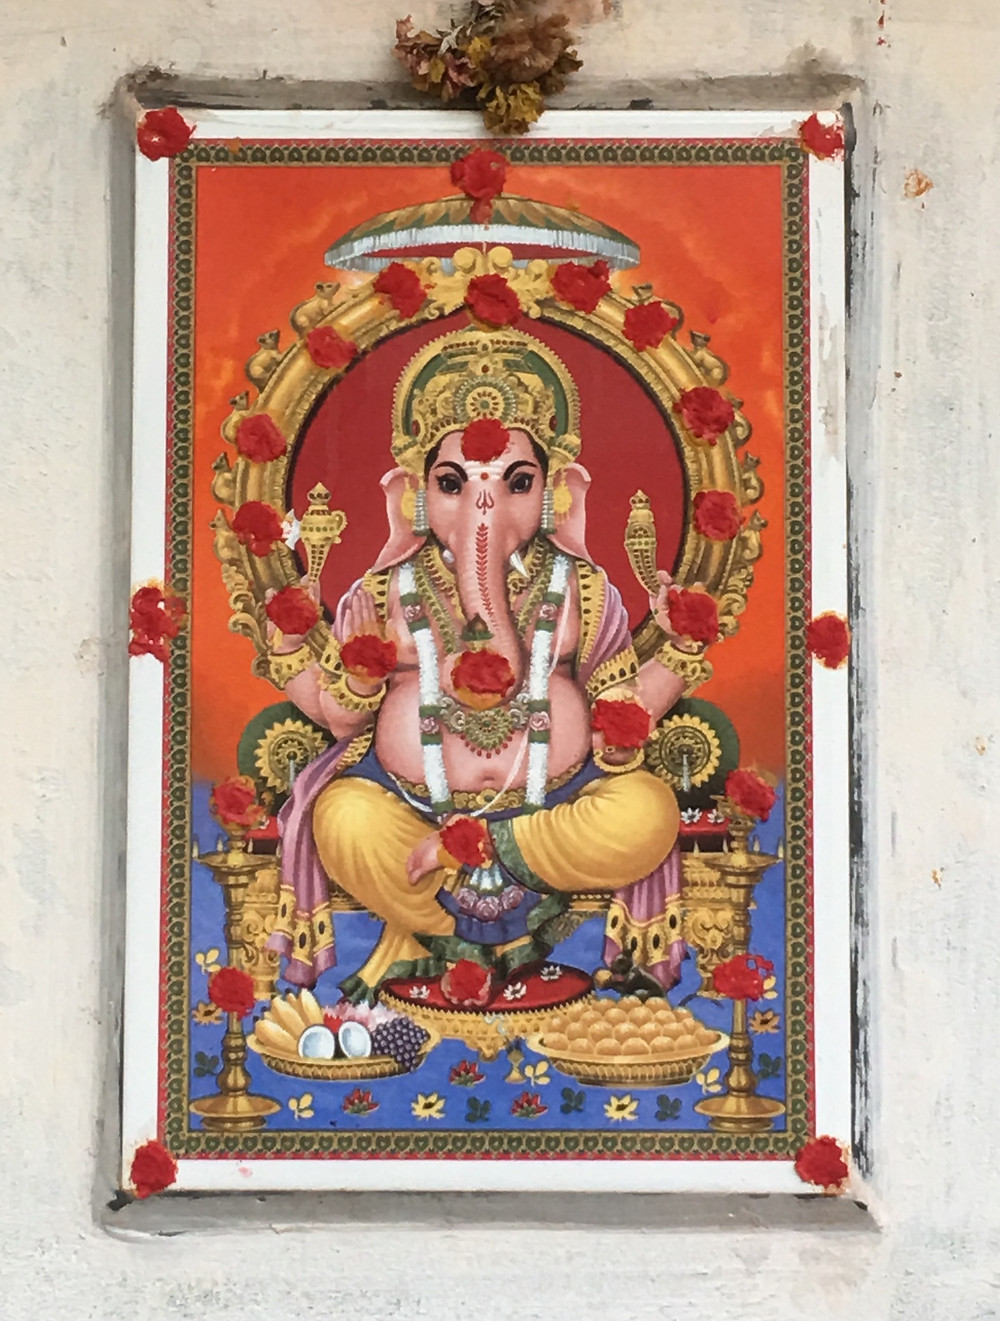 Ganesha- the remover of obstacles